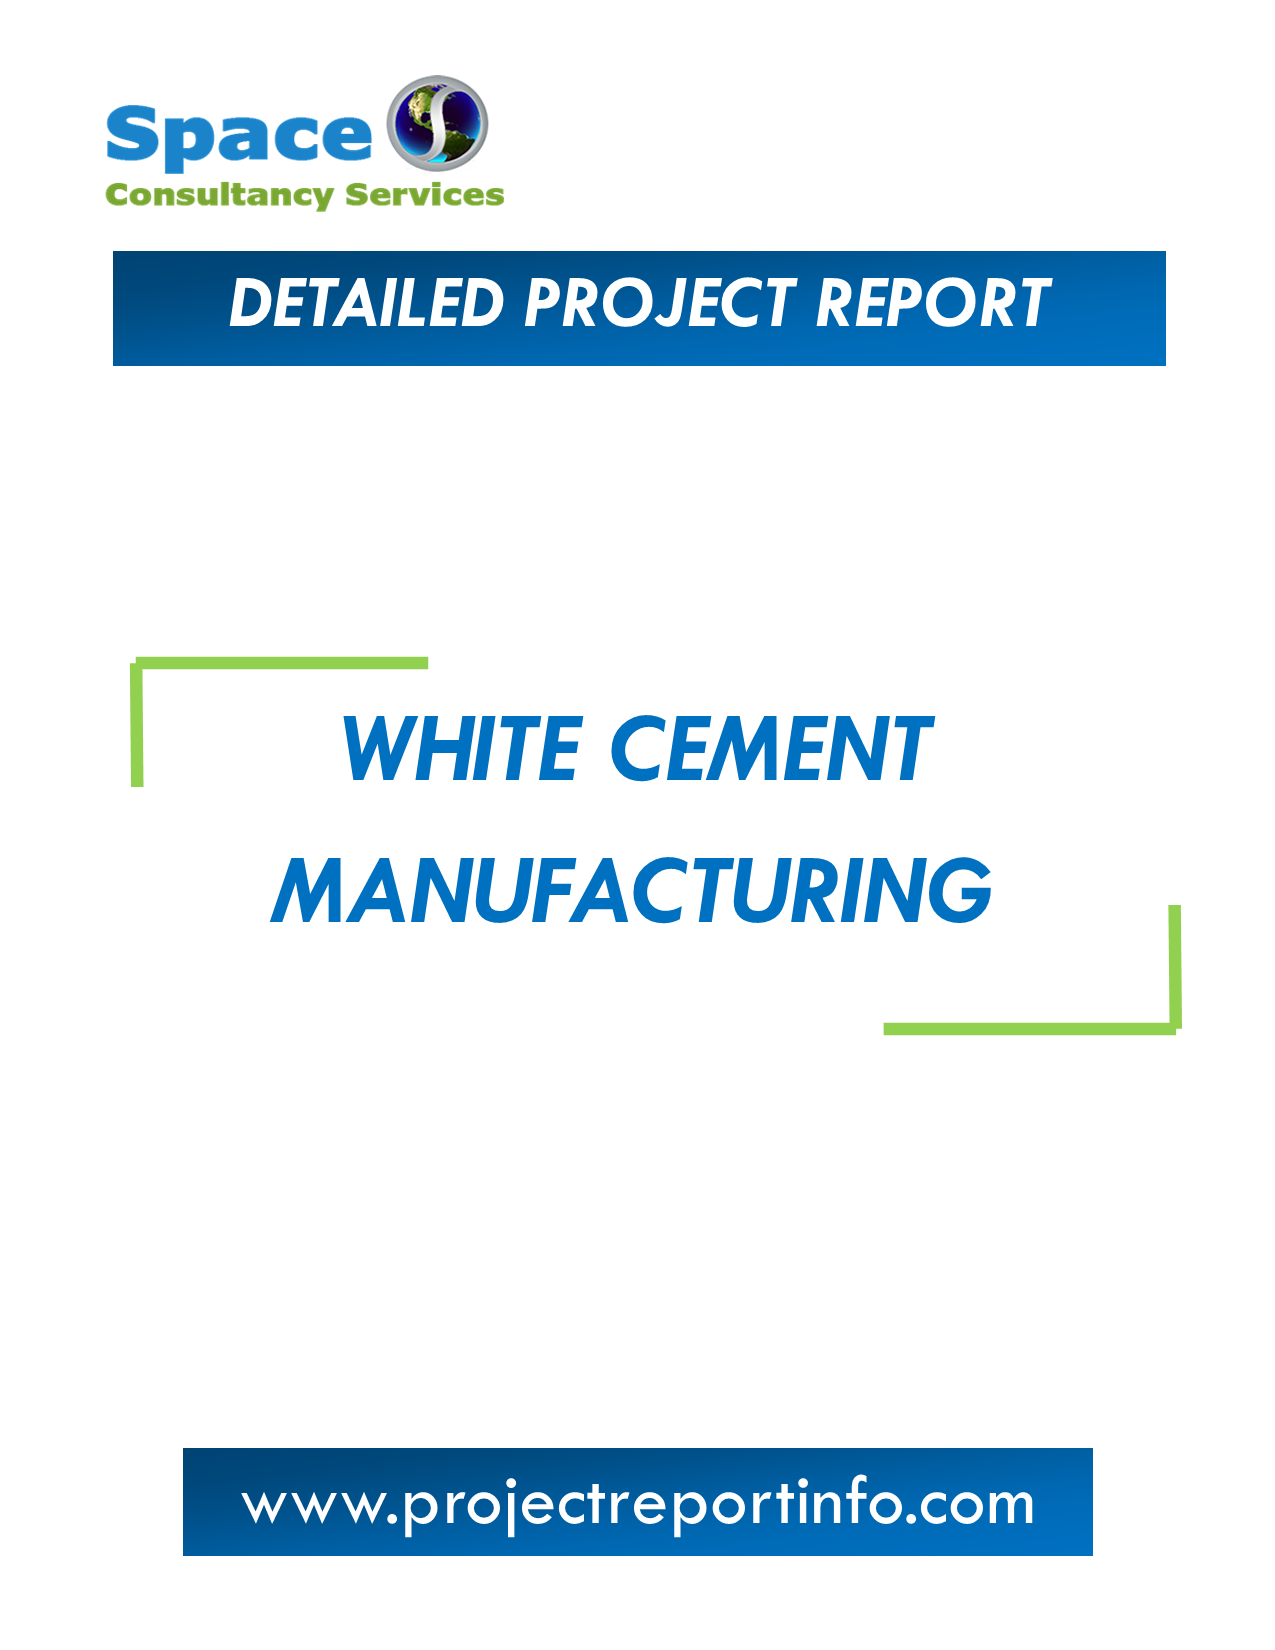 Project Report on White Cement Manufacturing